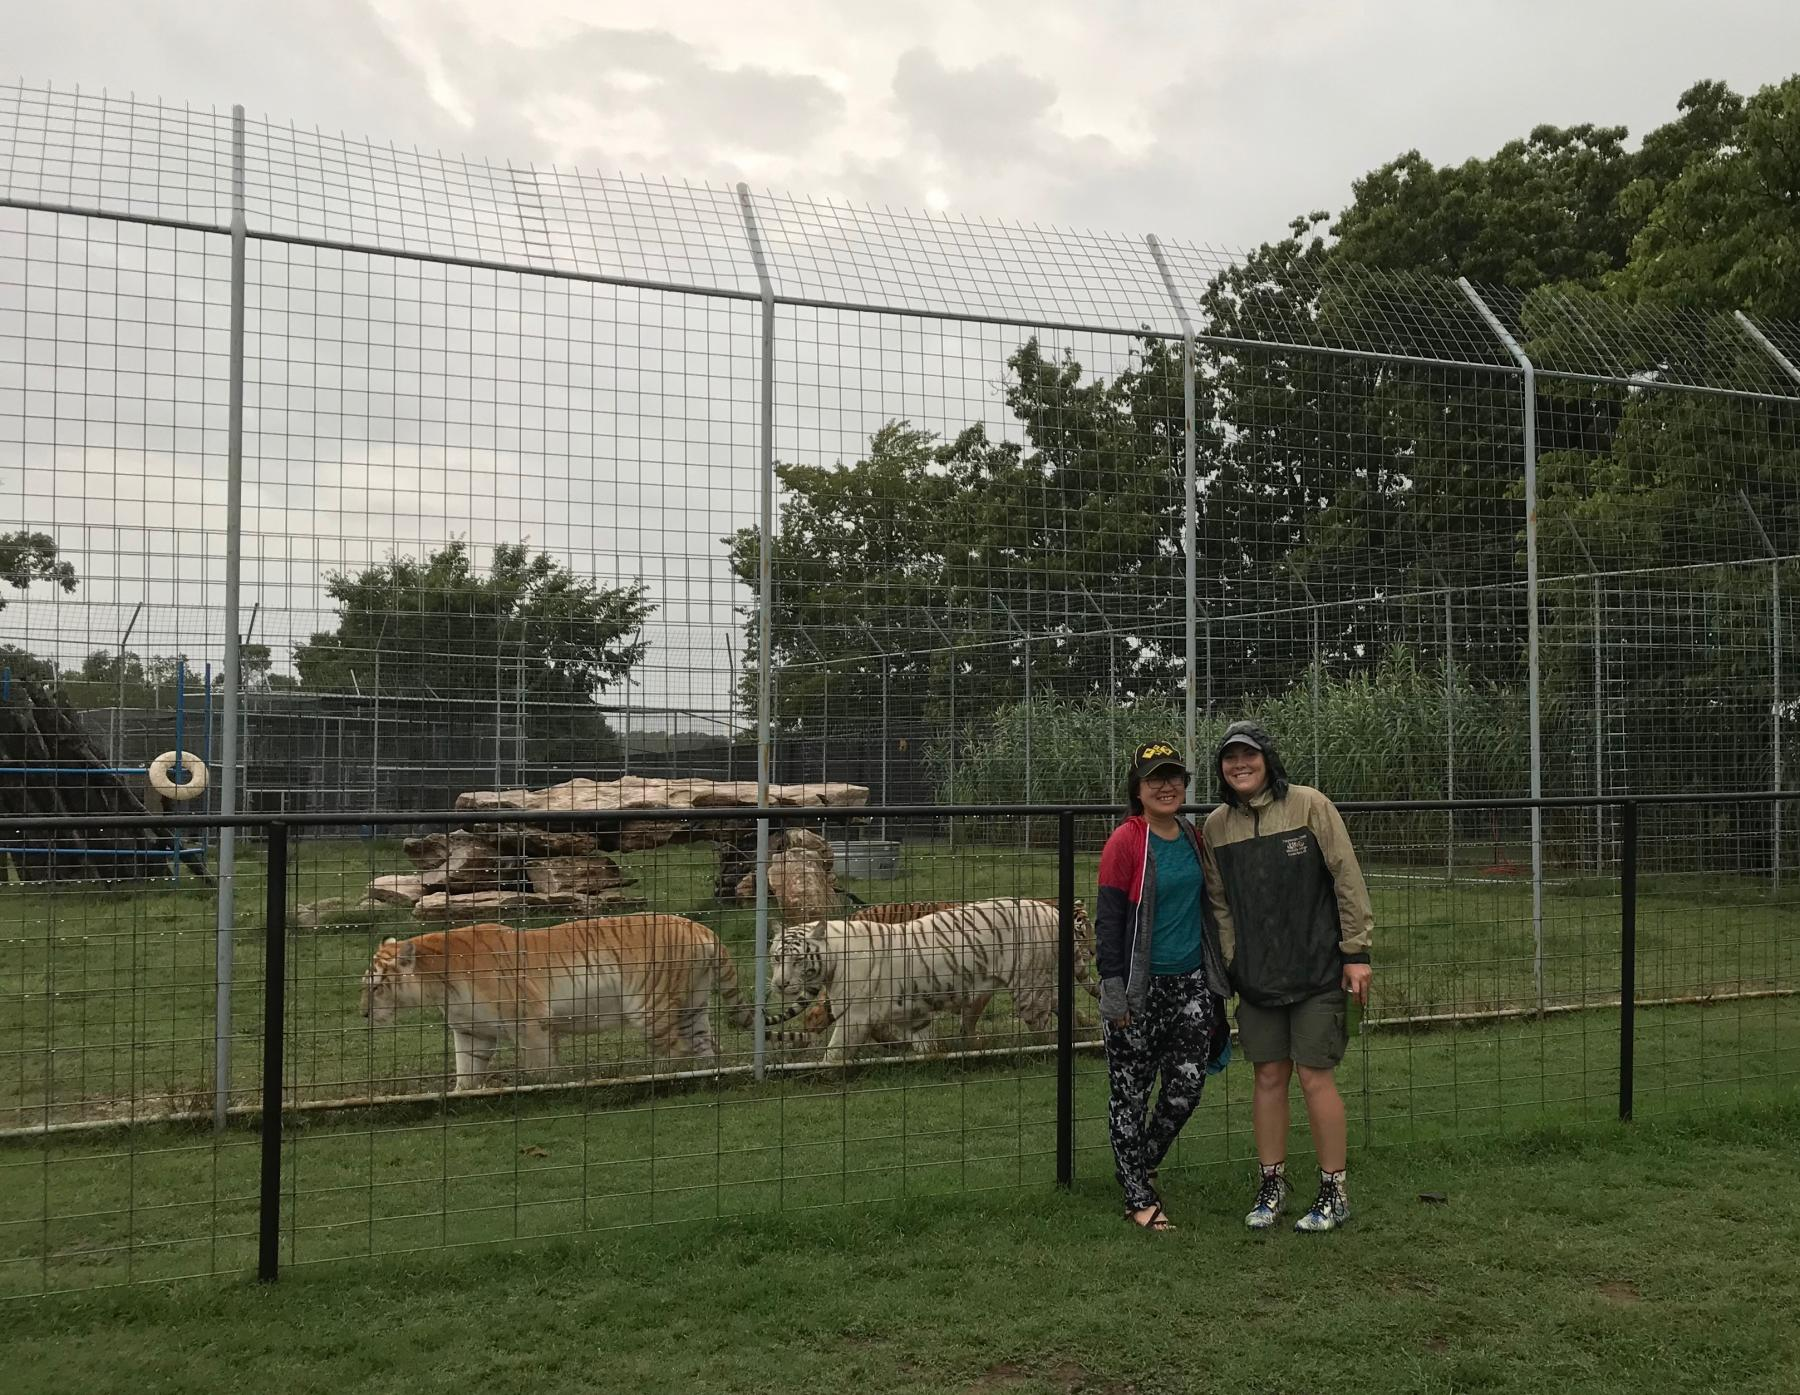 USA Big Cats - Volunteer Experience - Photo Sharing (Free Event) starting at High Street, Funan Showsuite, Singapore